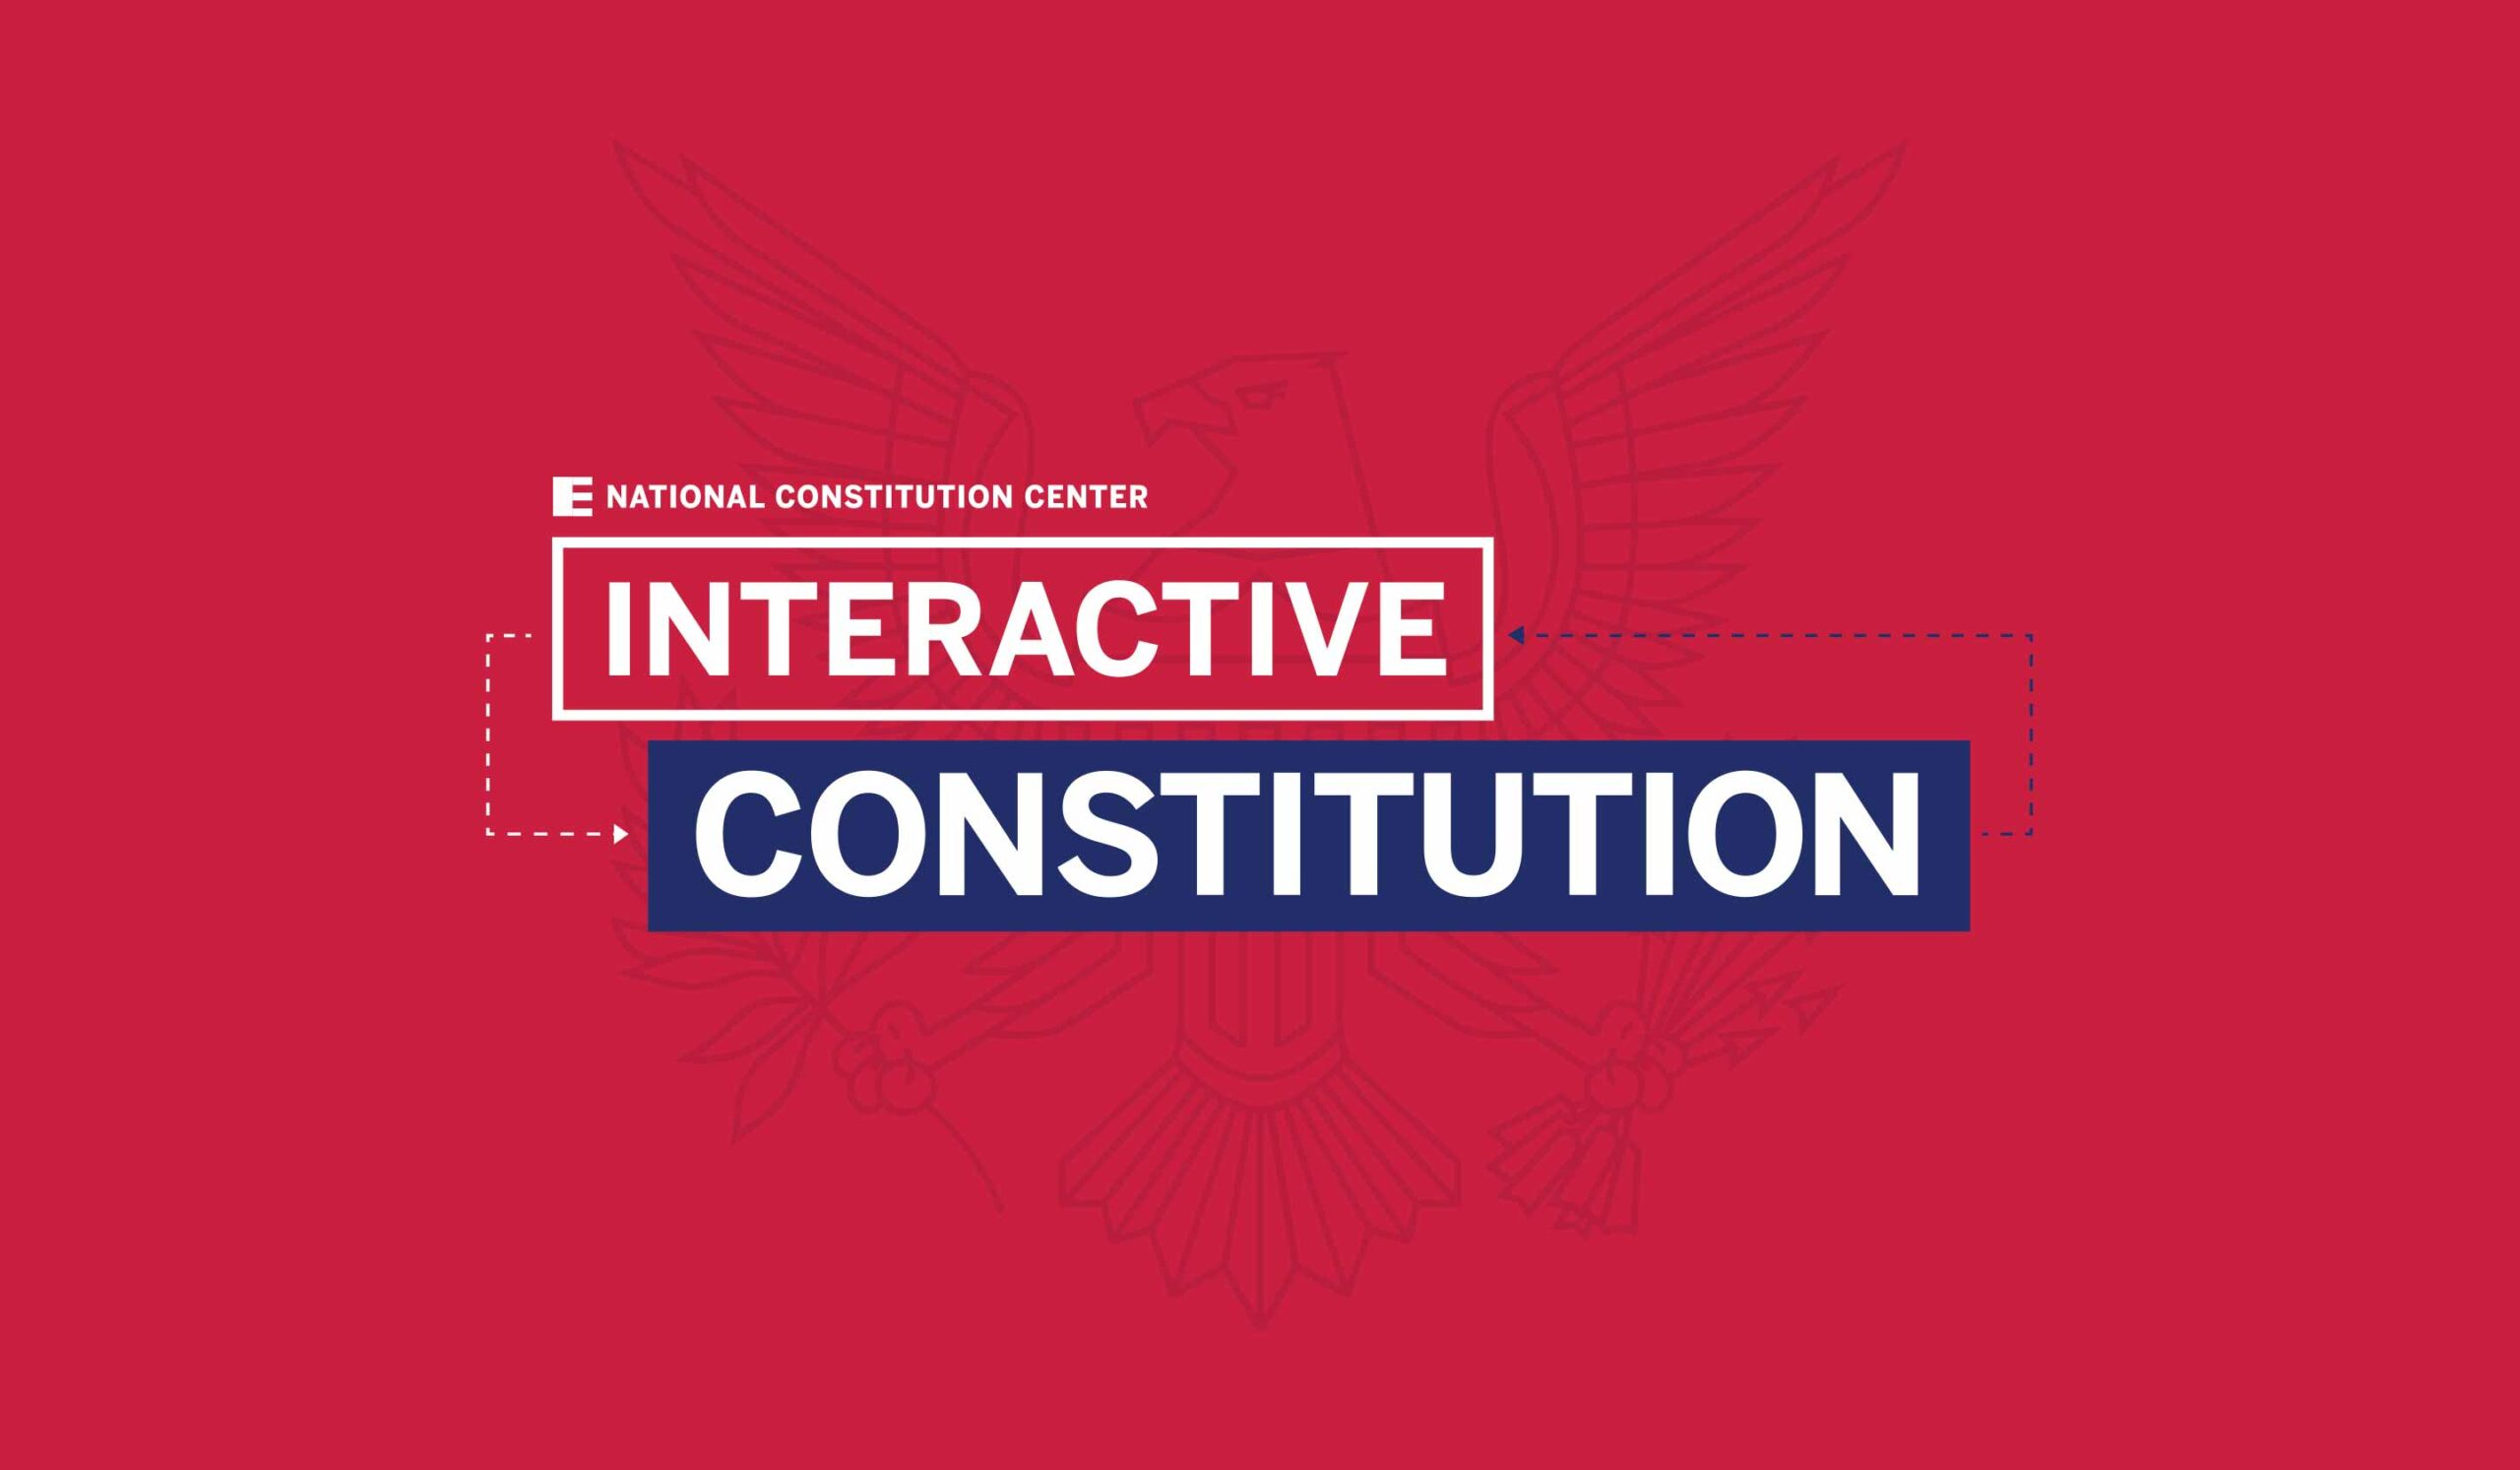 National-Constitution-Center-Interactive-Constitution